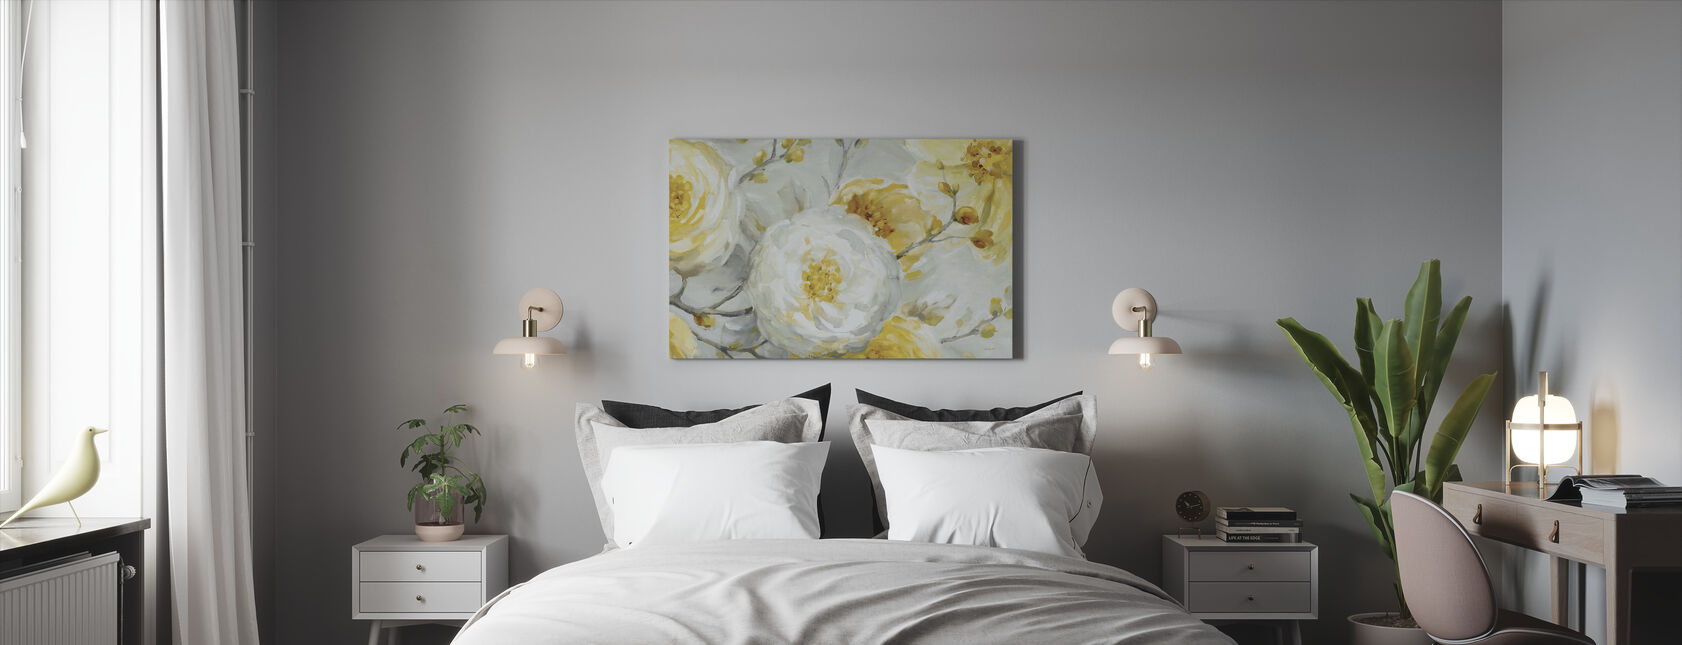 Sunshine - Canvas print - Bedroom